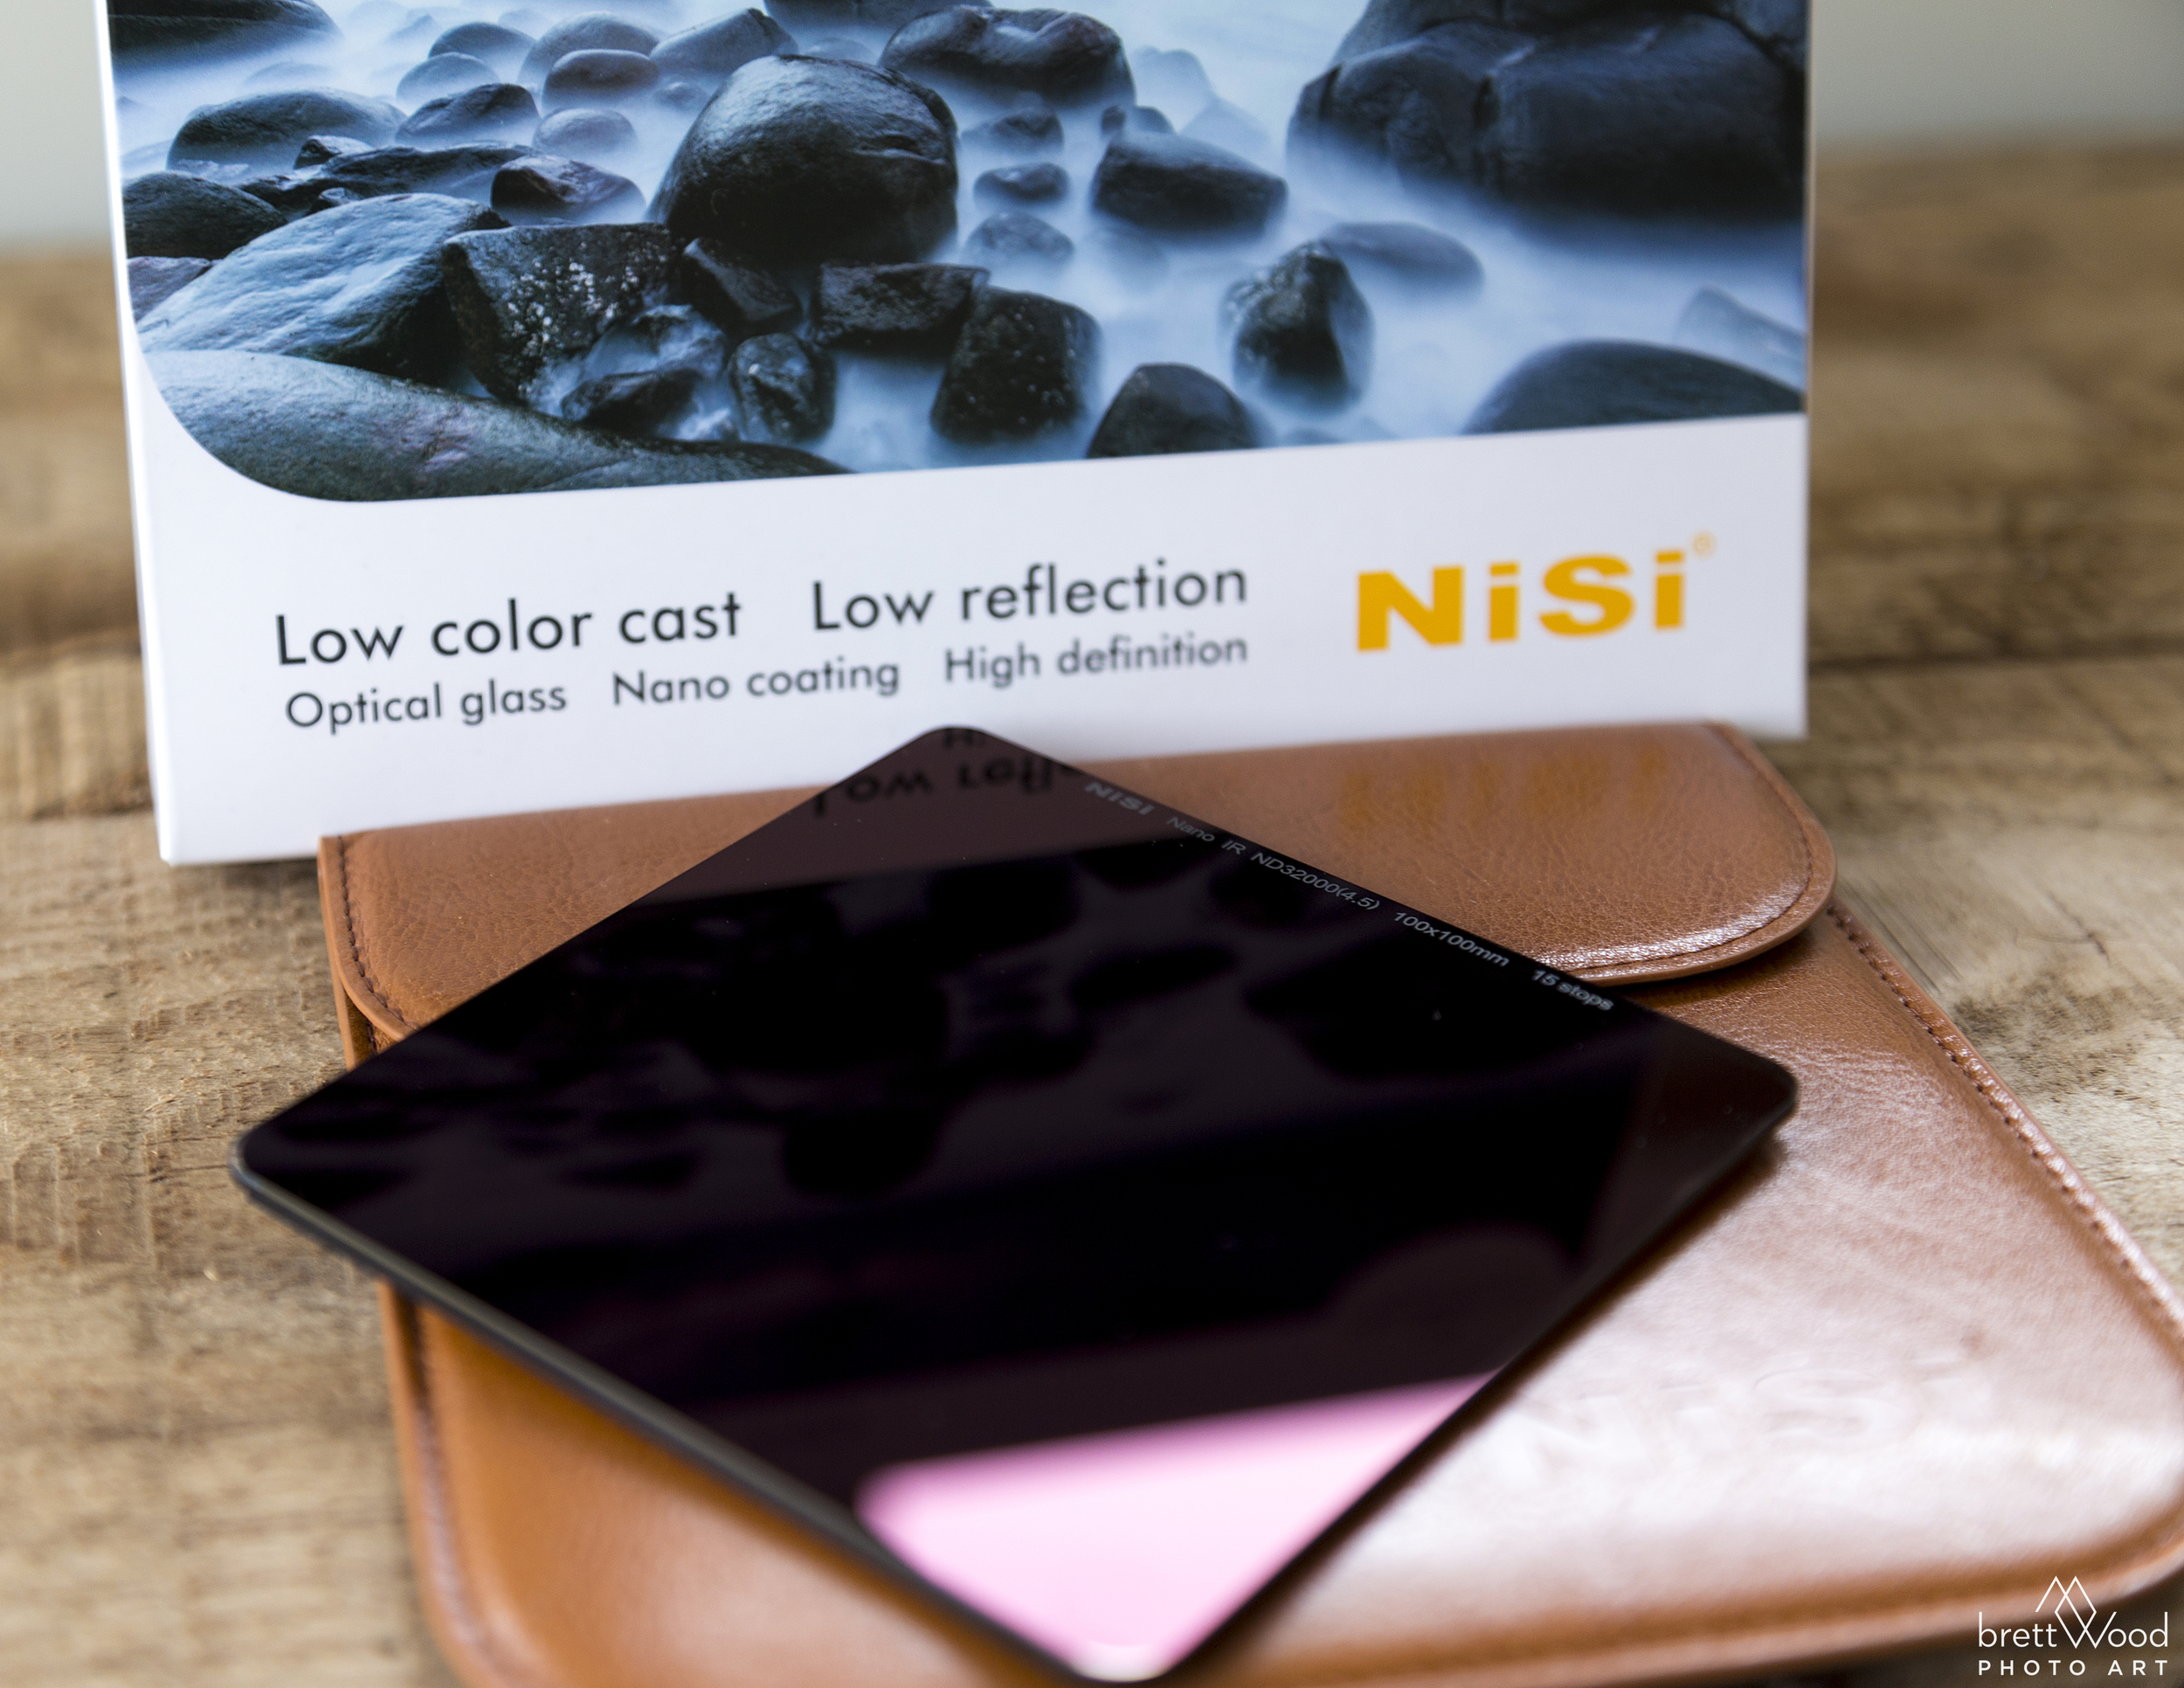 impressive packaging & quality from Nisi